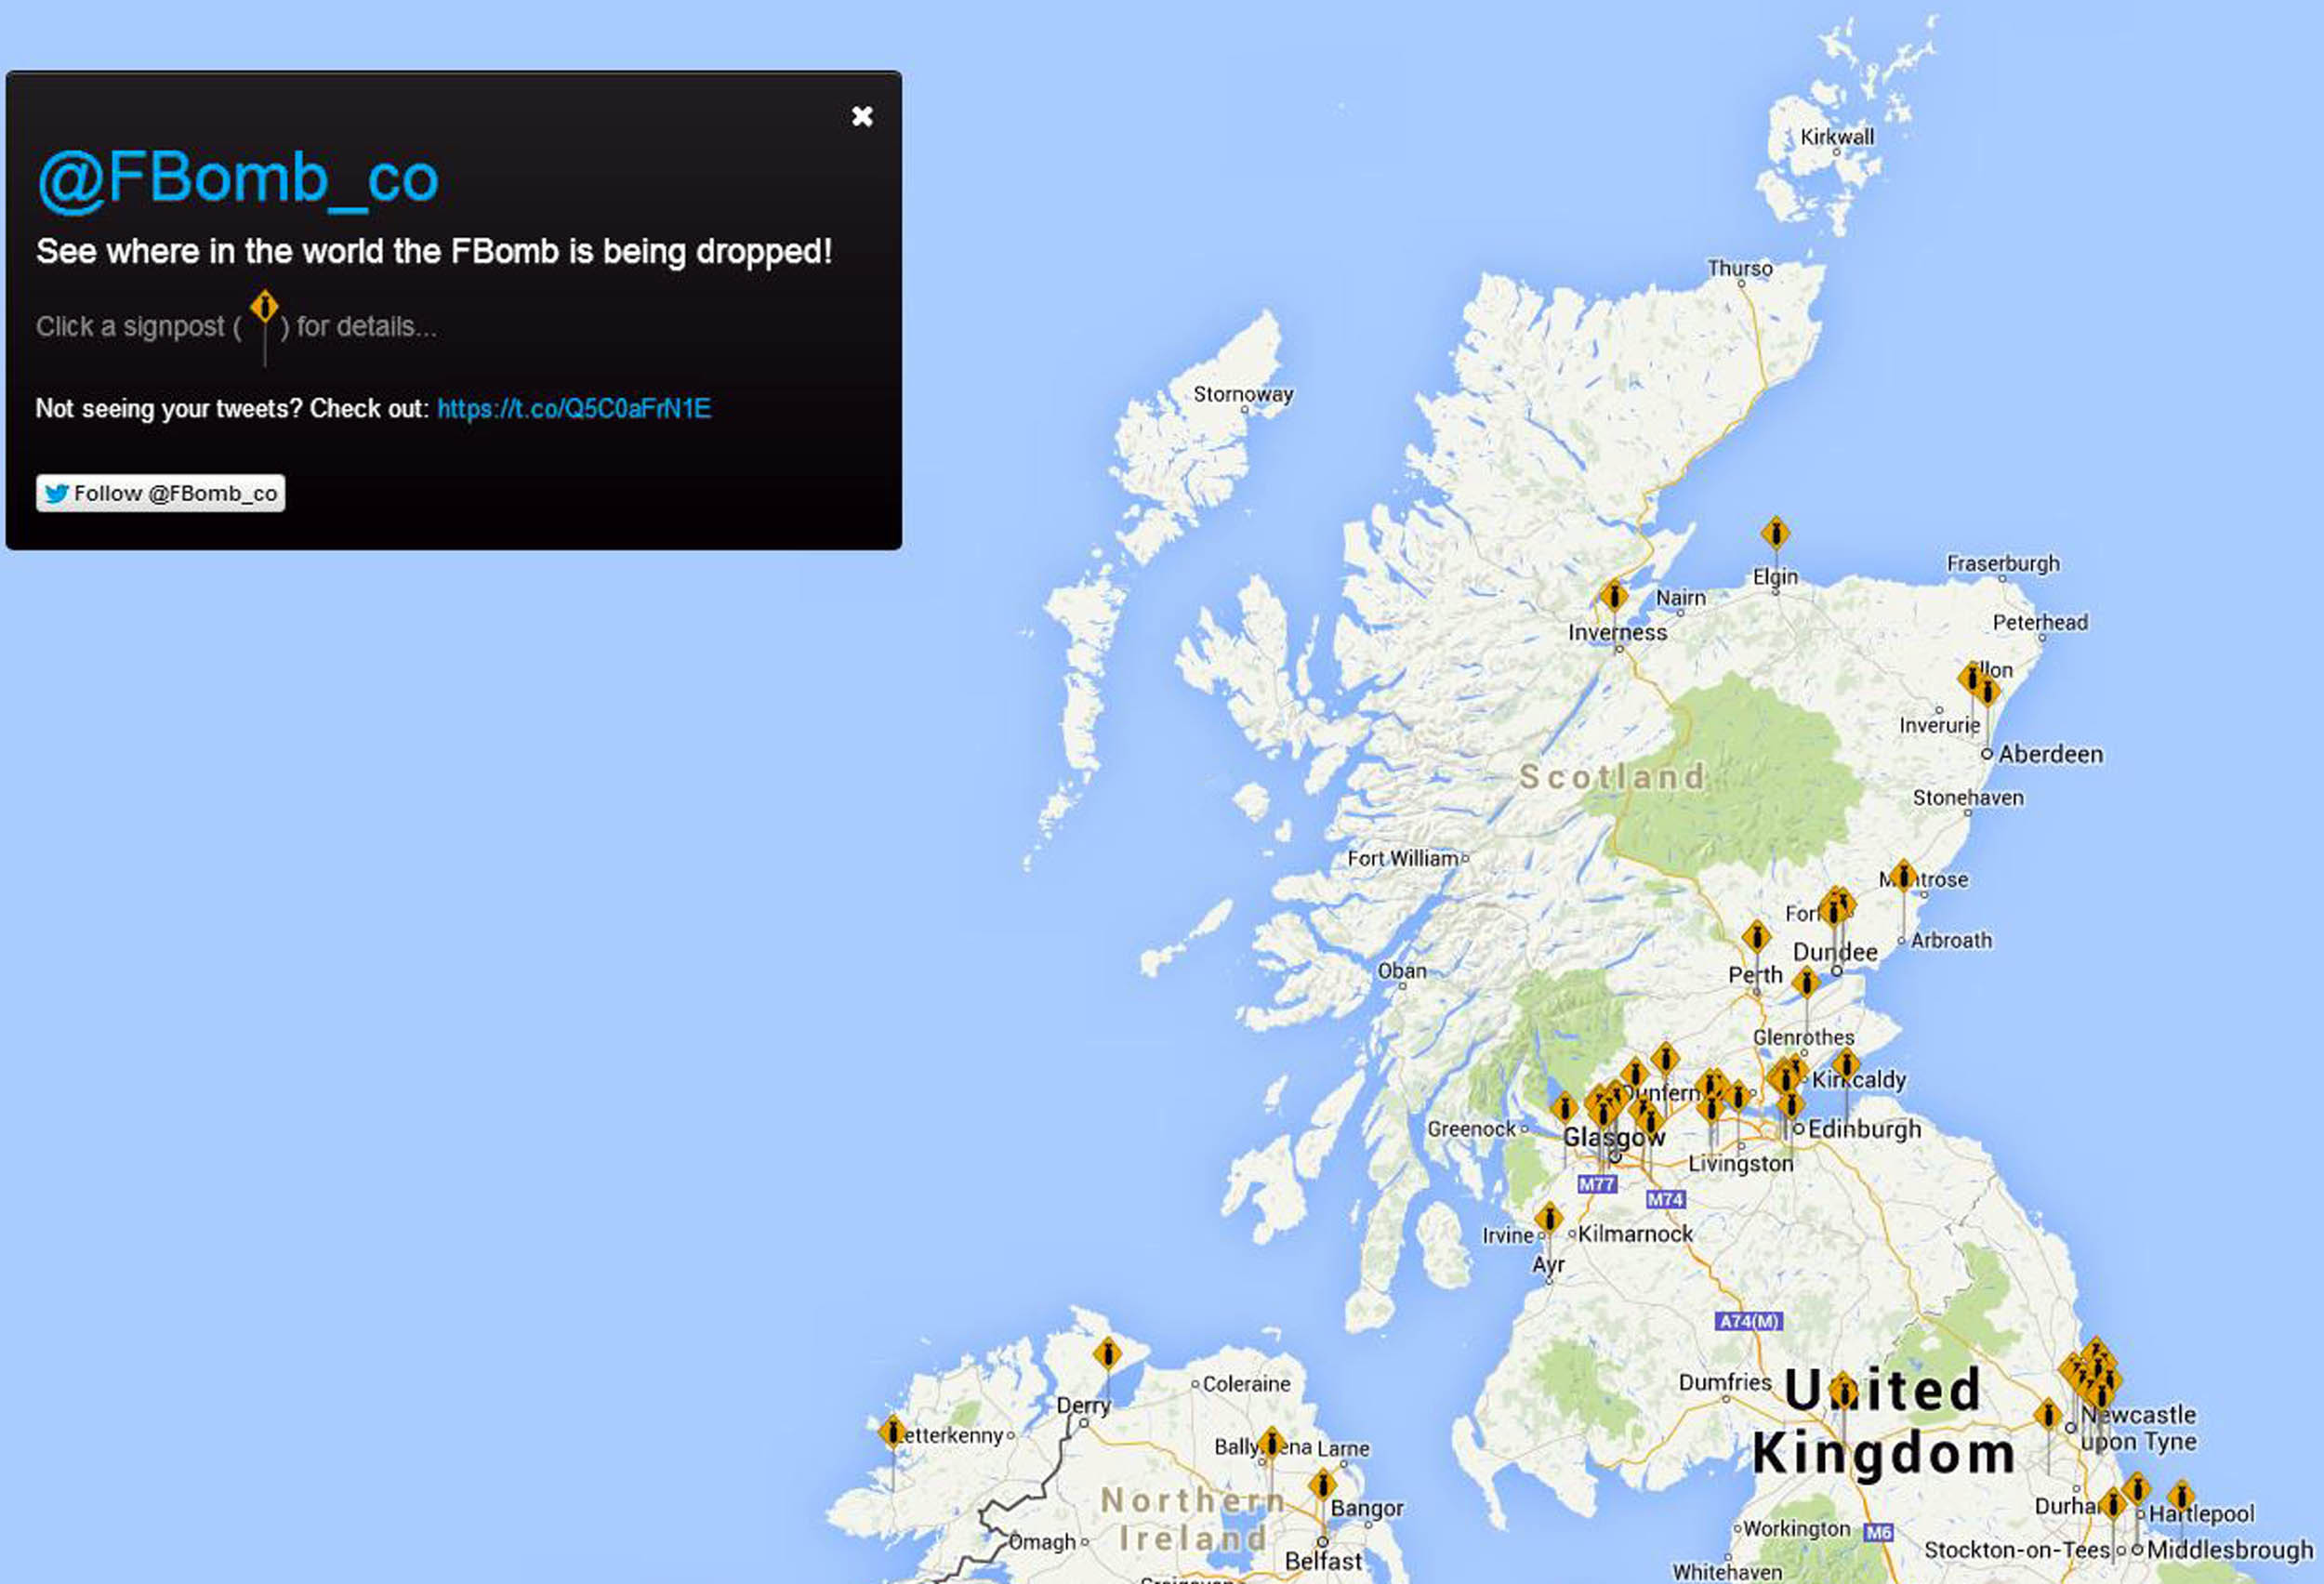 F-bomb' website pinpoints Scotland's foul-mouthed Tweets - Deadline News